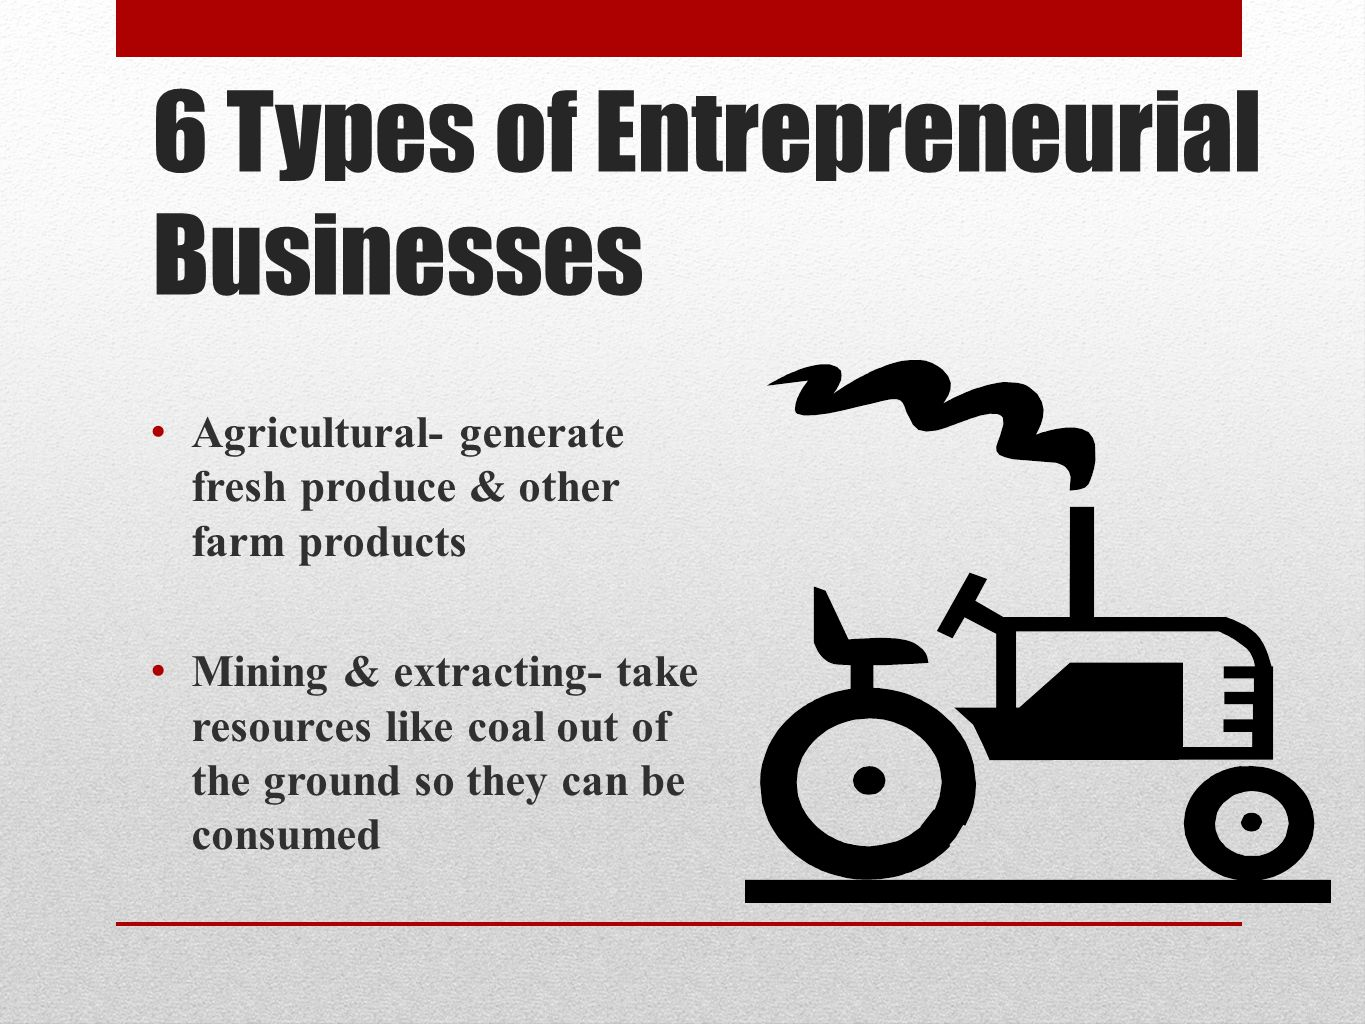 6 Types of Entrepreneurial Businesses